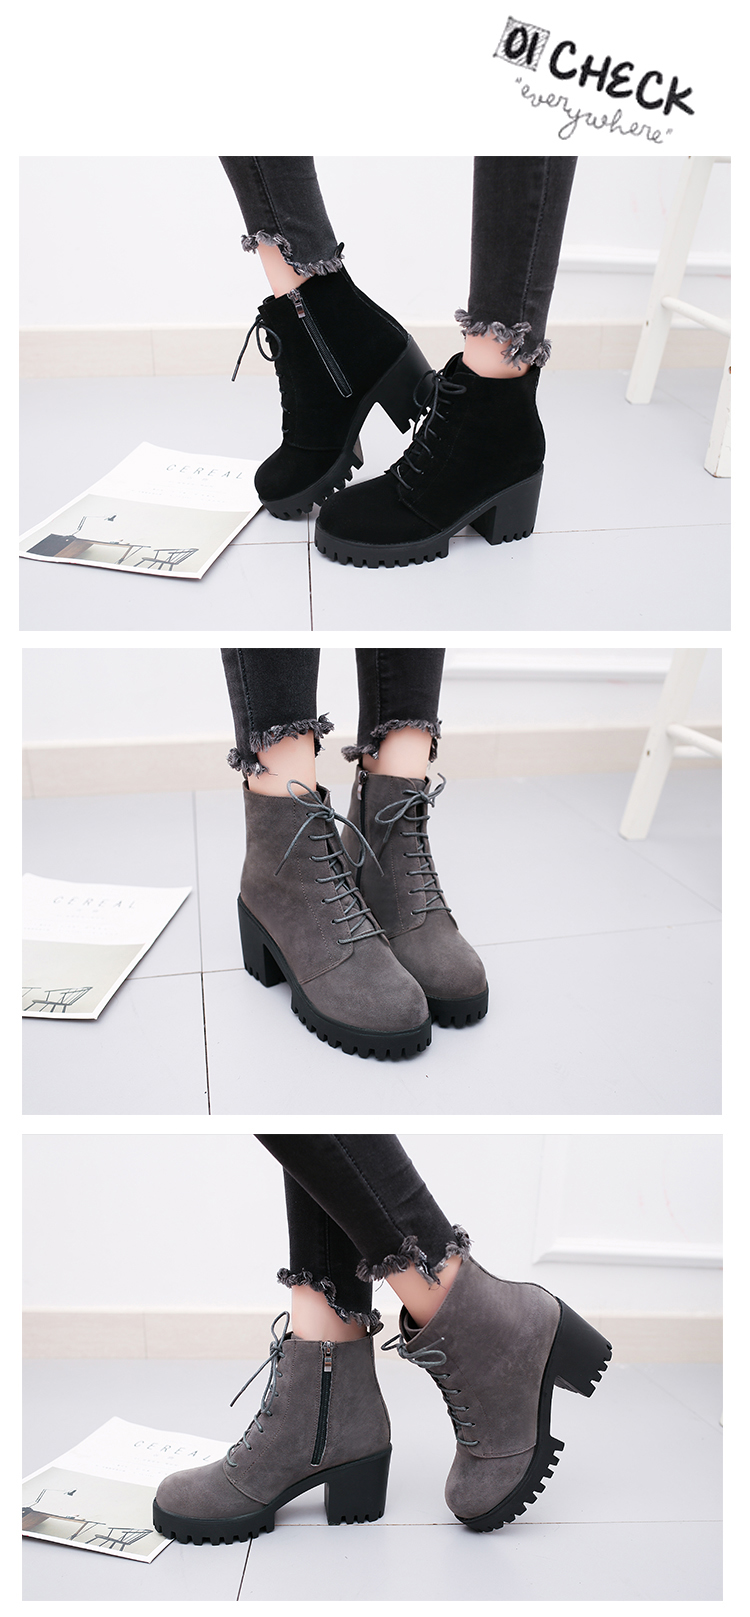 2018 new short tube autumn and winter women's boot thick with high-heeled solid color round head fashion casual warm boots wome 11